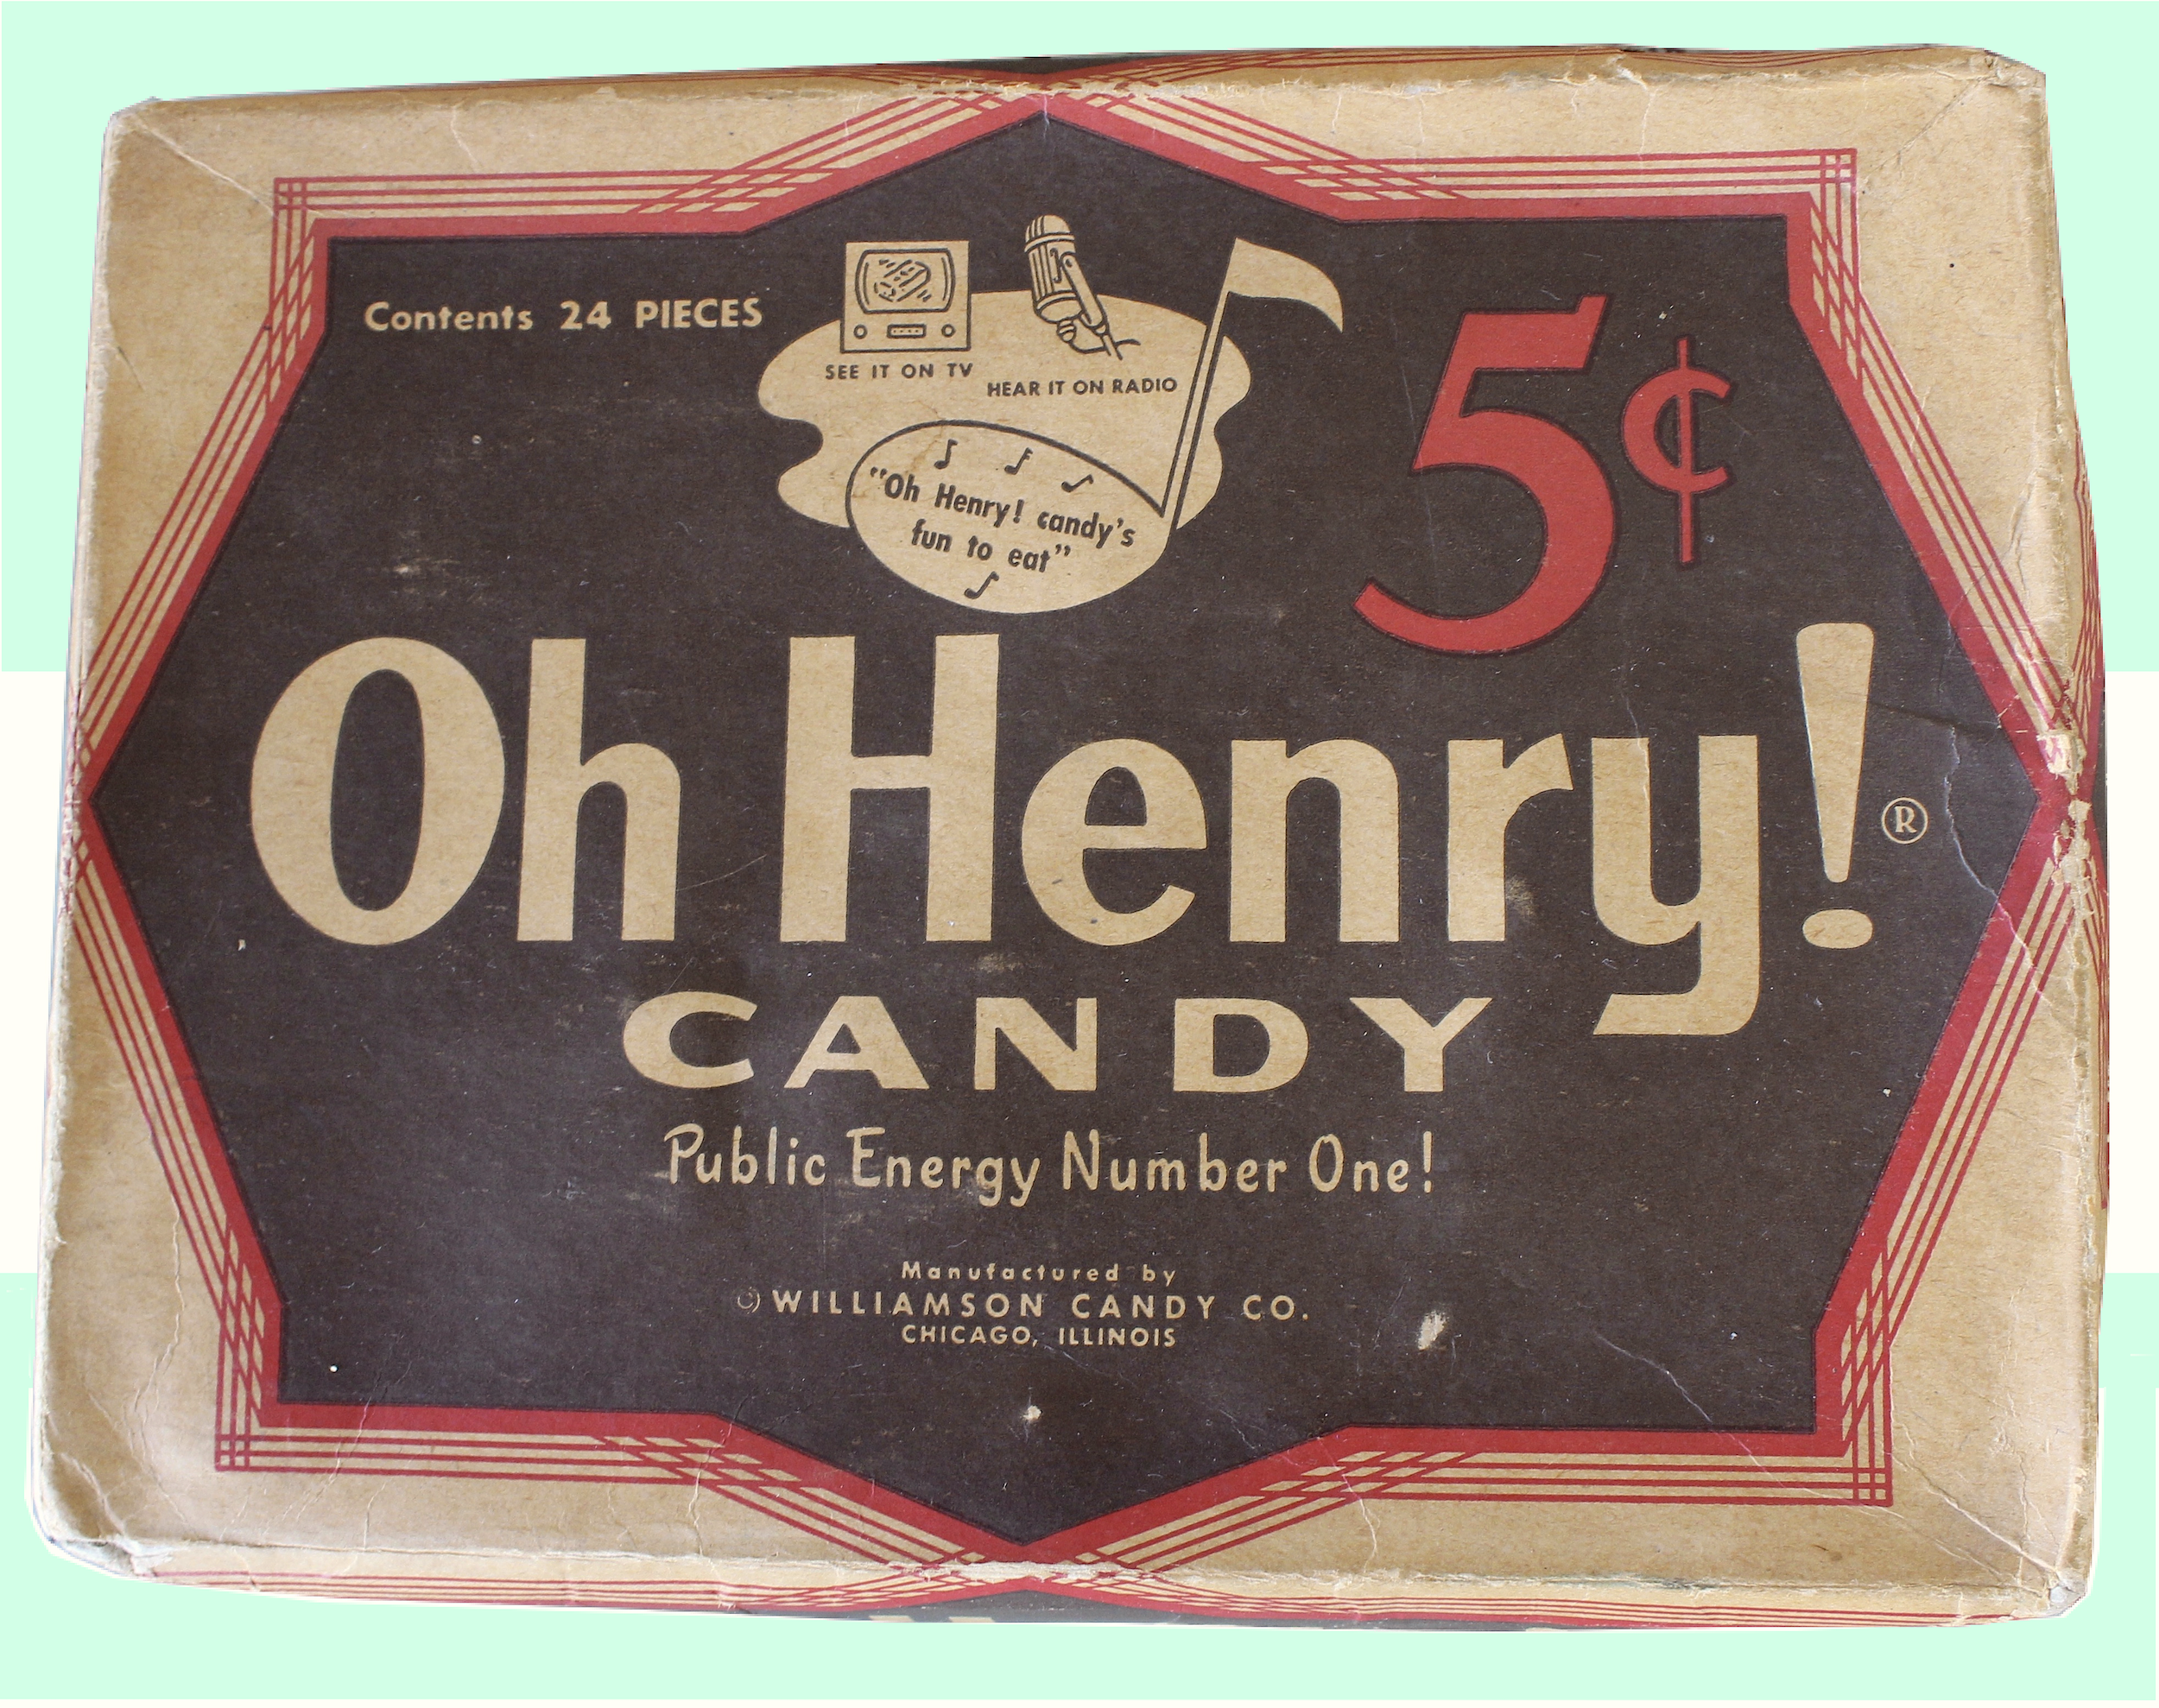 Oh Henry! and the Williamson Candy Co., est. 1917